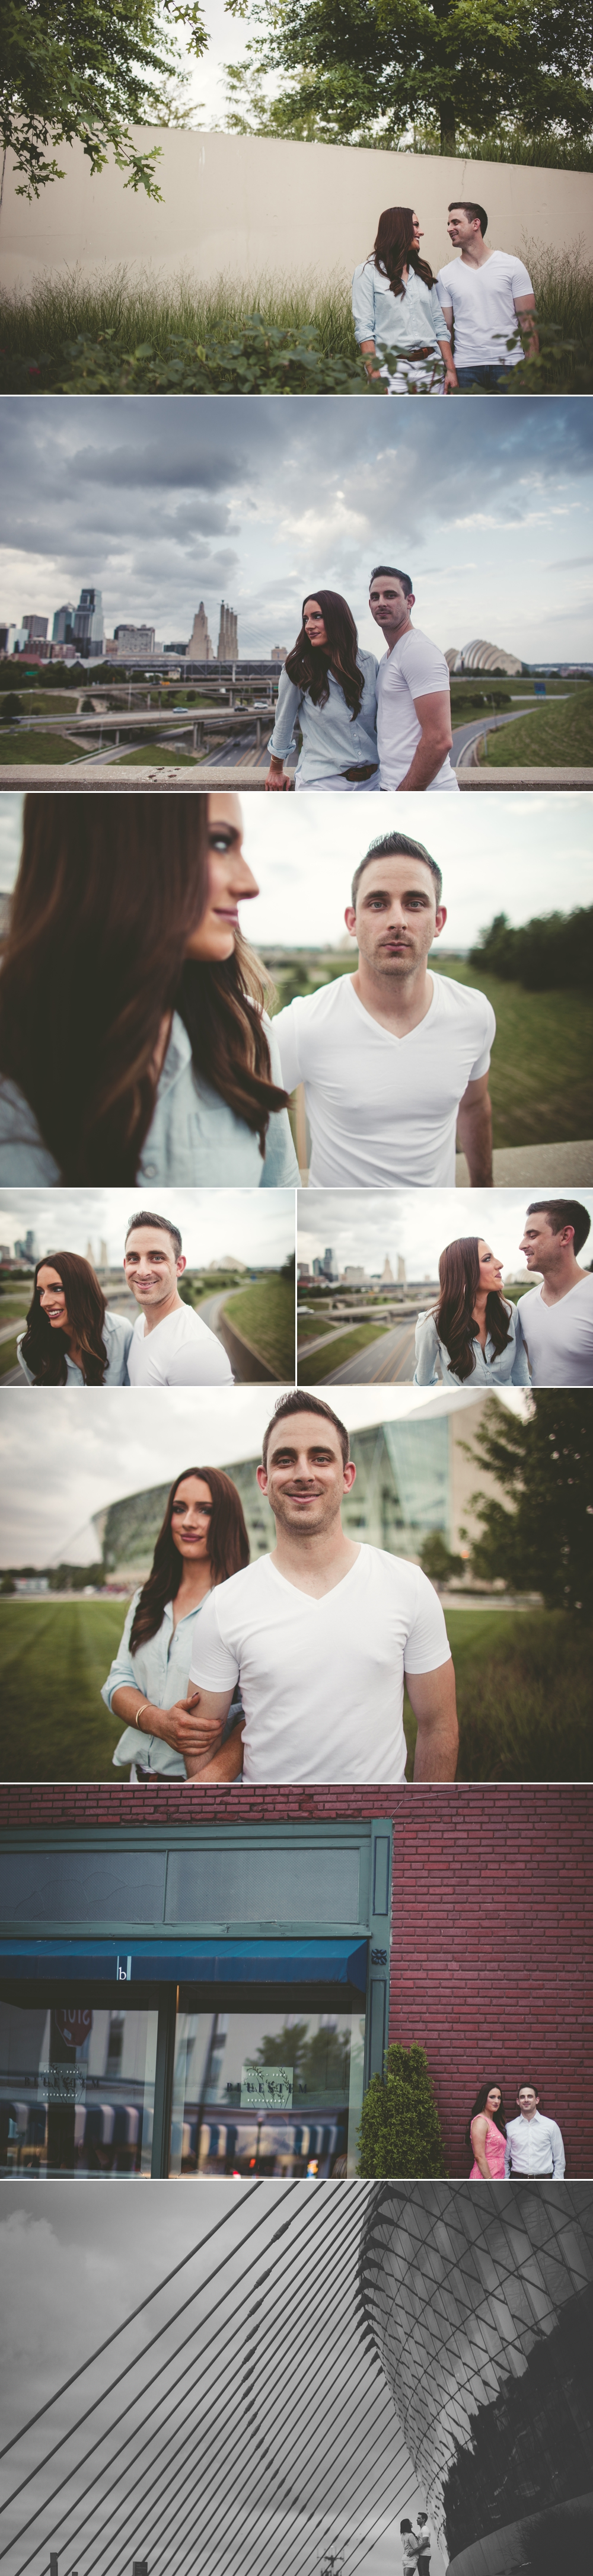 jason_domingues_photography_best_kansas_city_photograper_engagement_session_kc_2